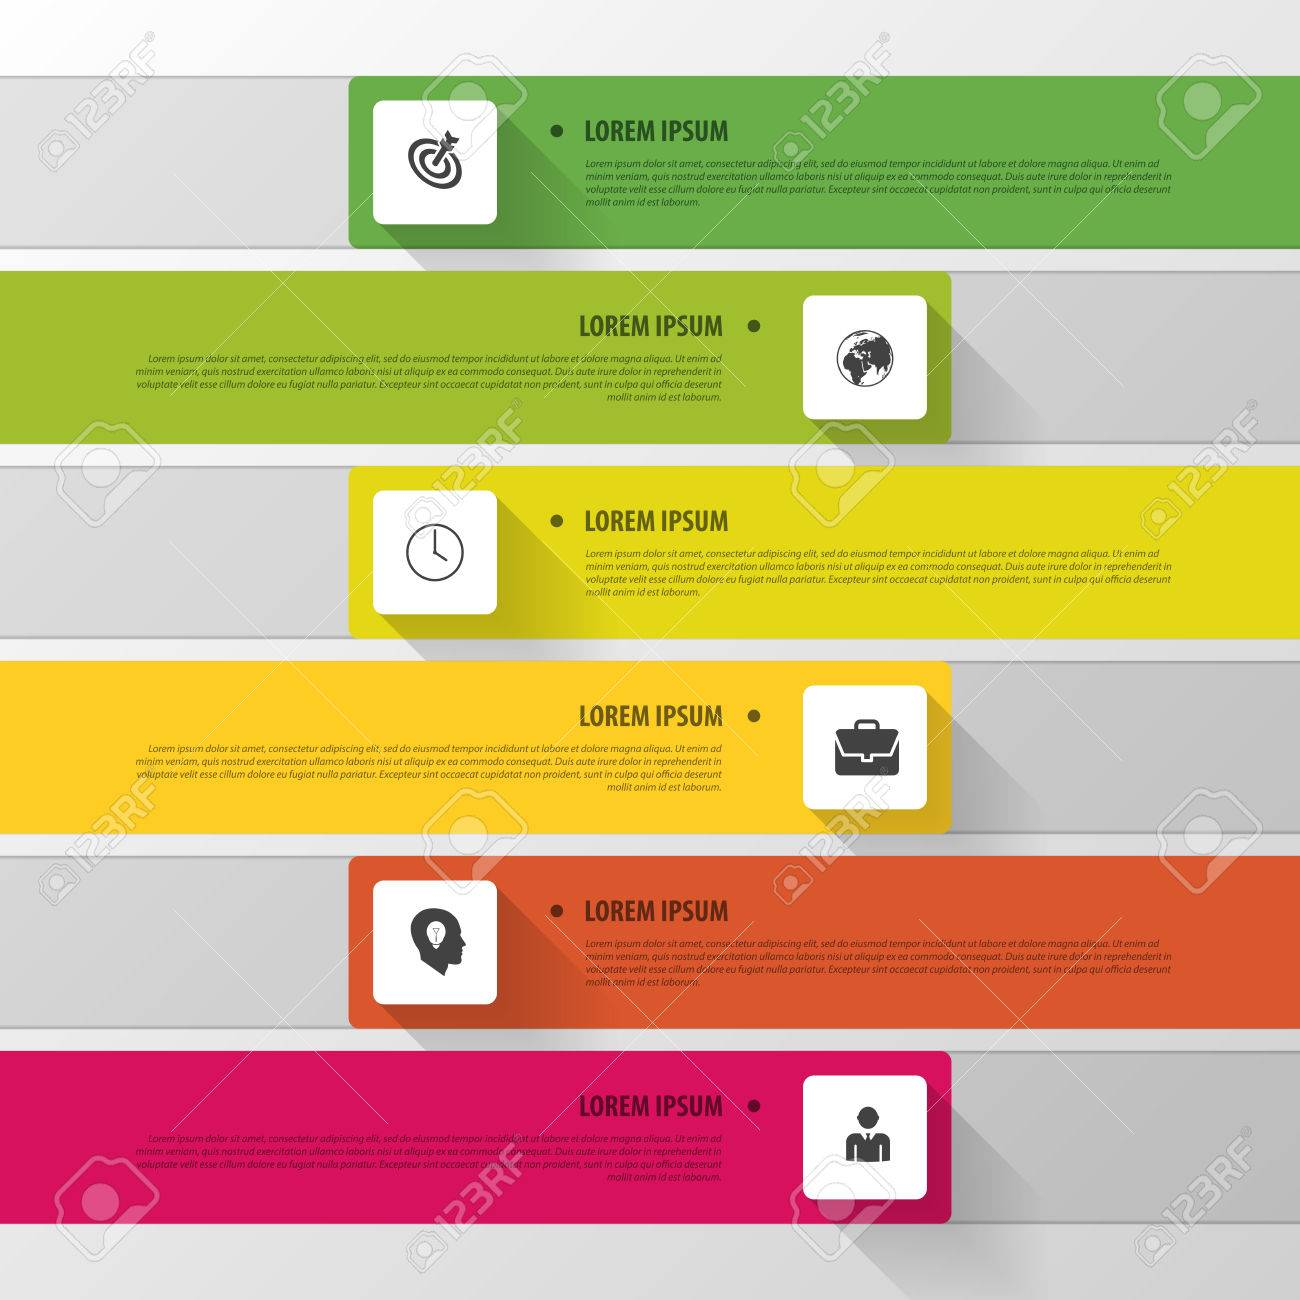 vector timeline infographic. modern simple design royalty free